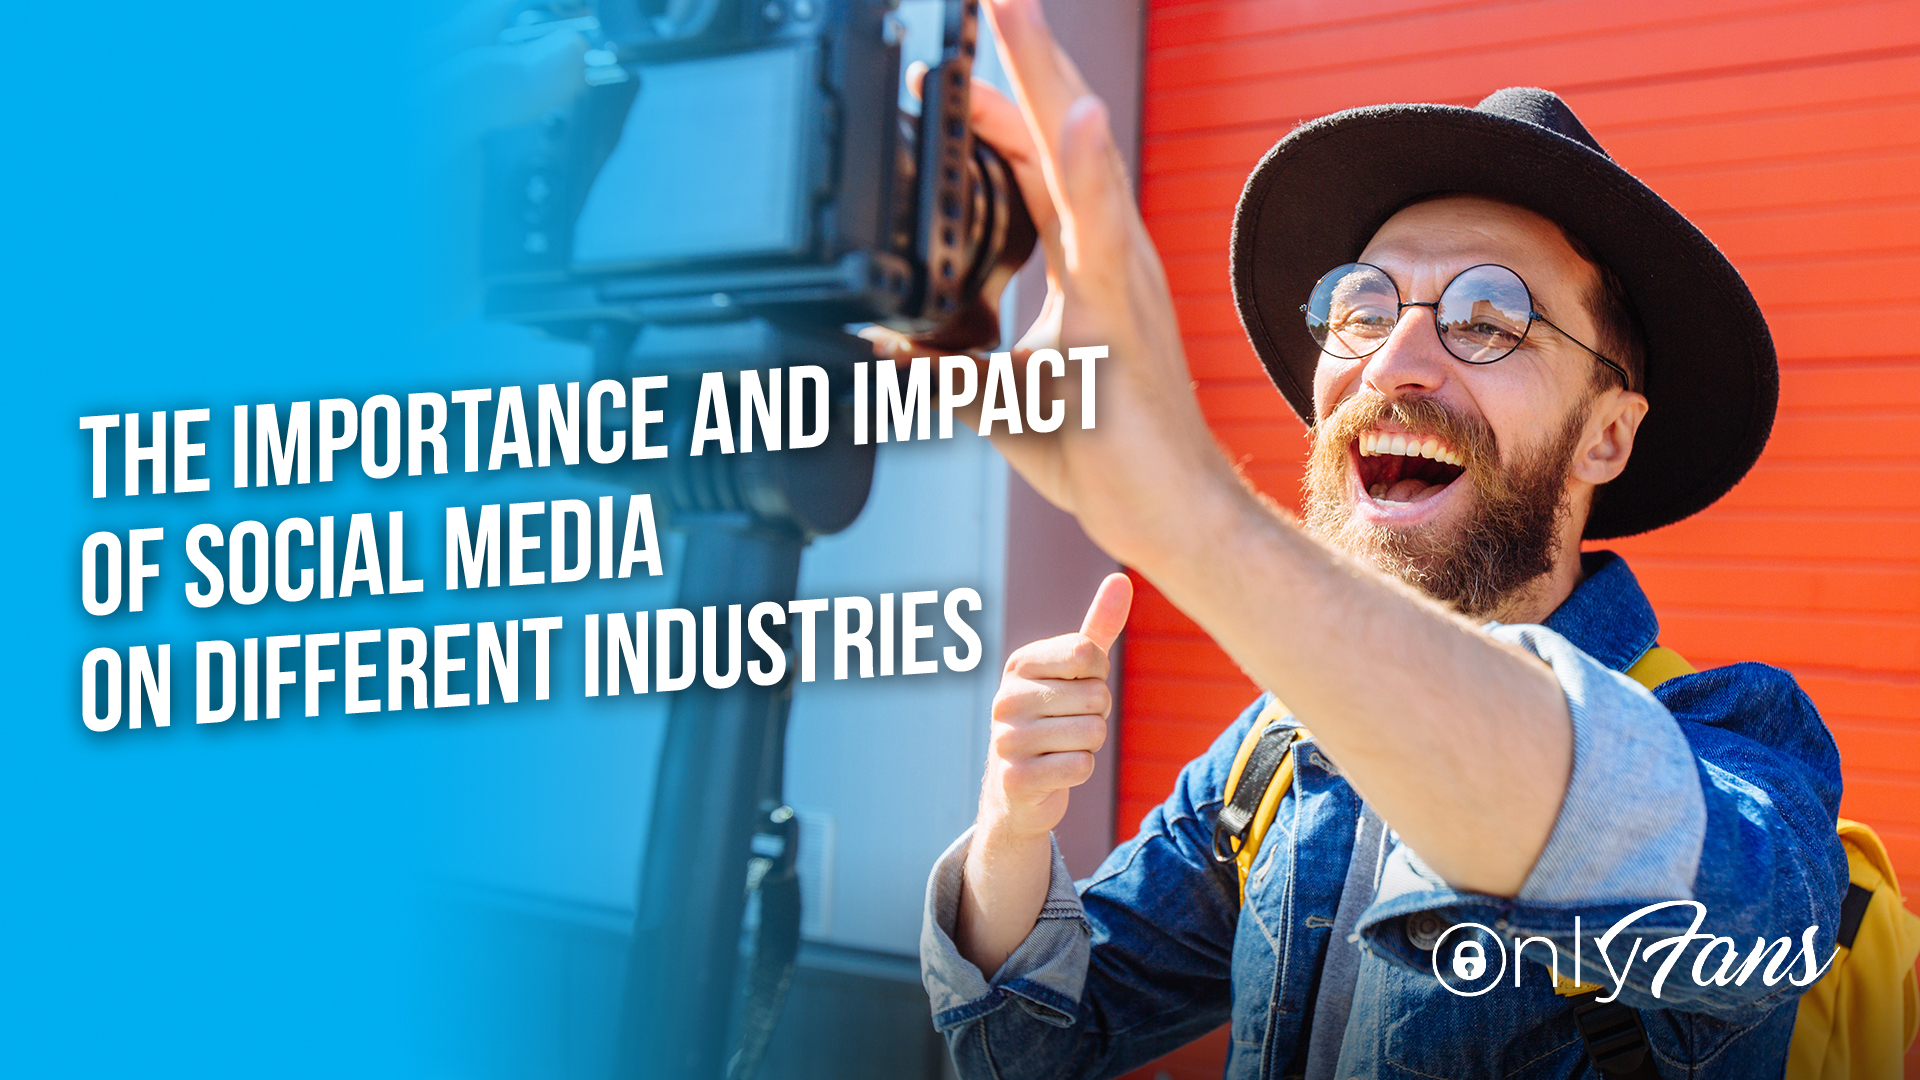 The Importance and Impact of Social Media on Different Industries